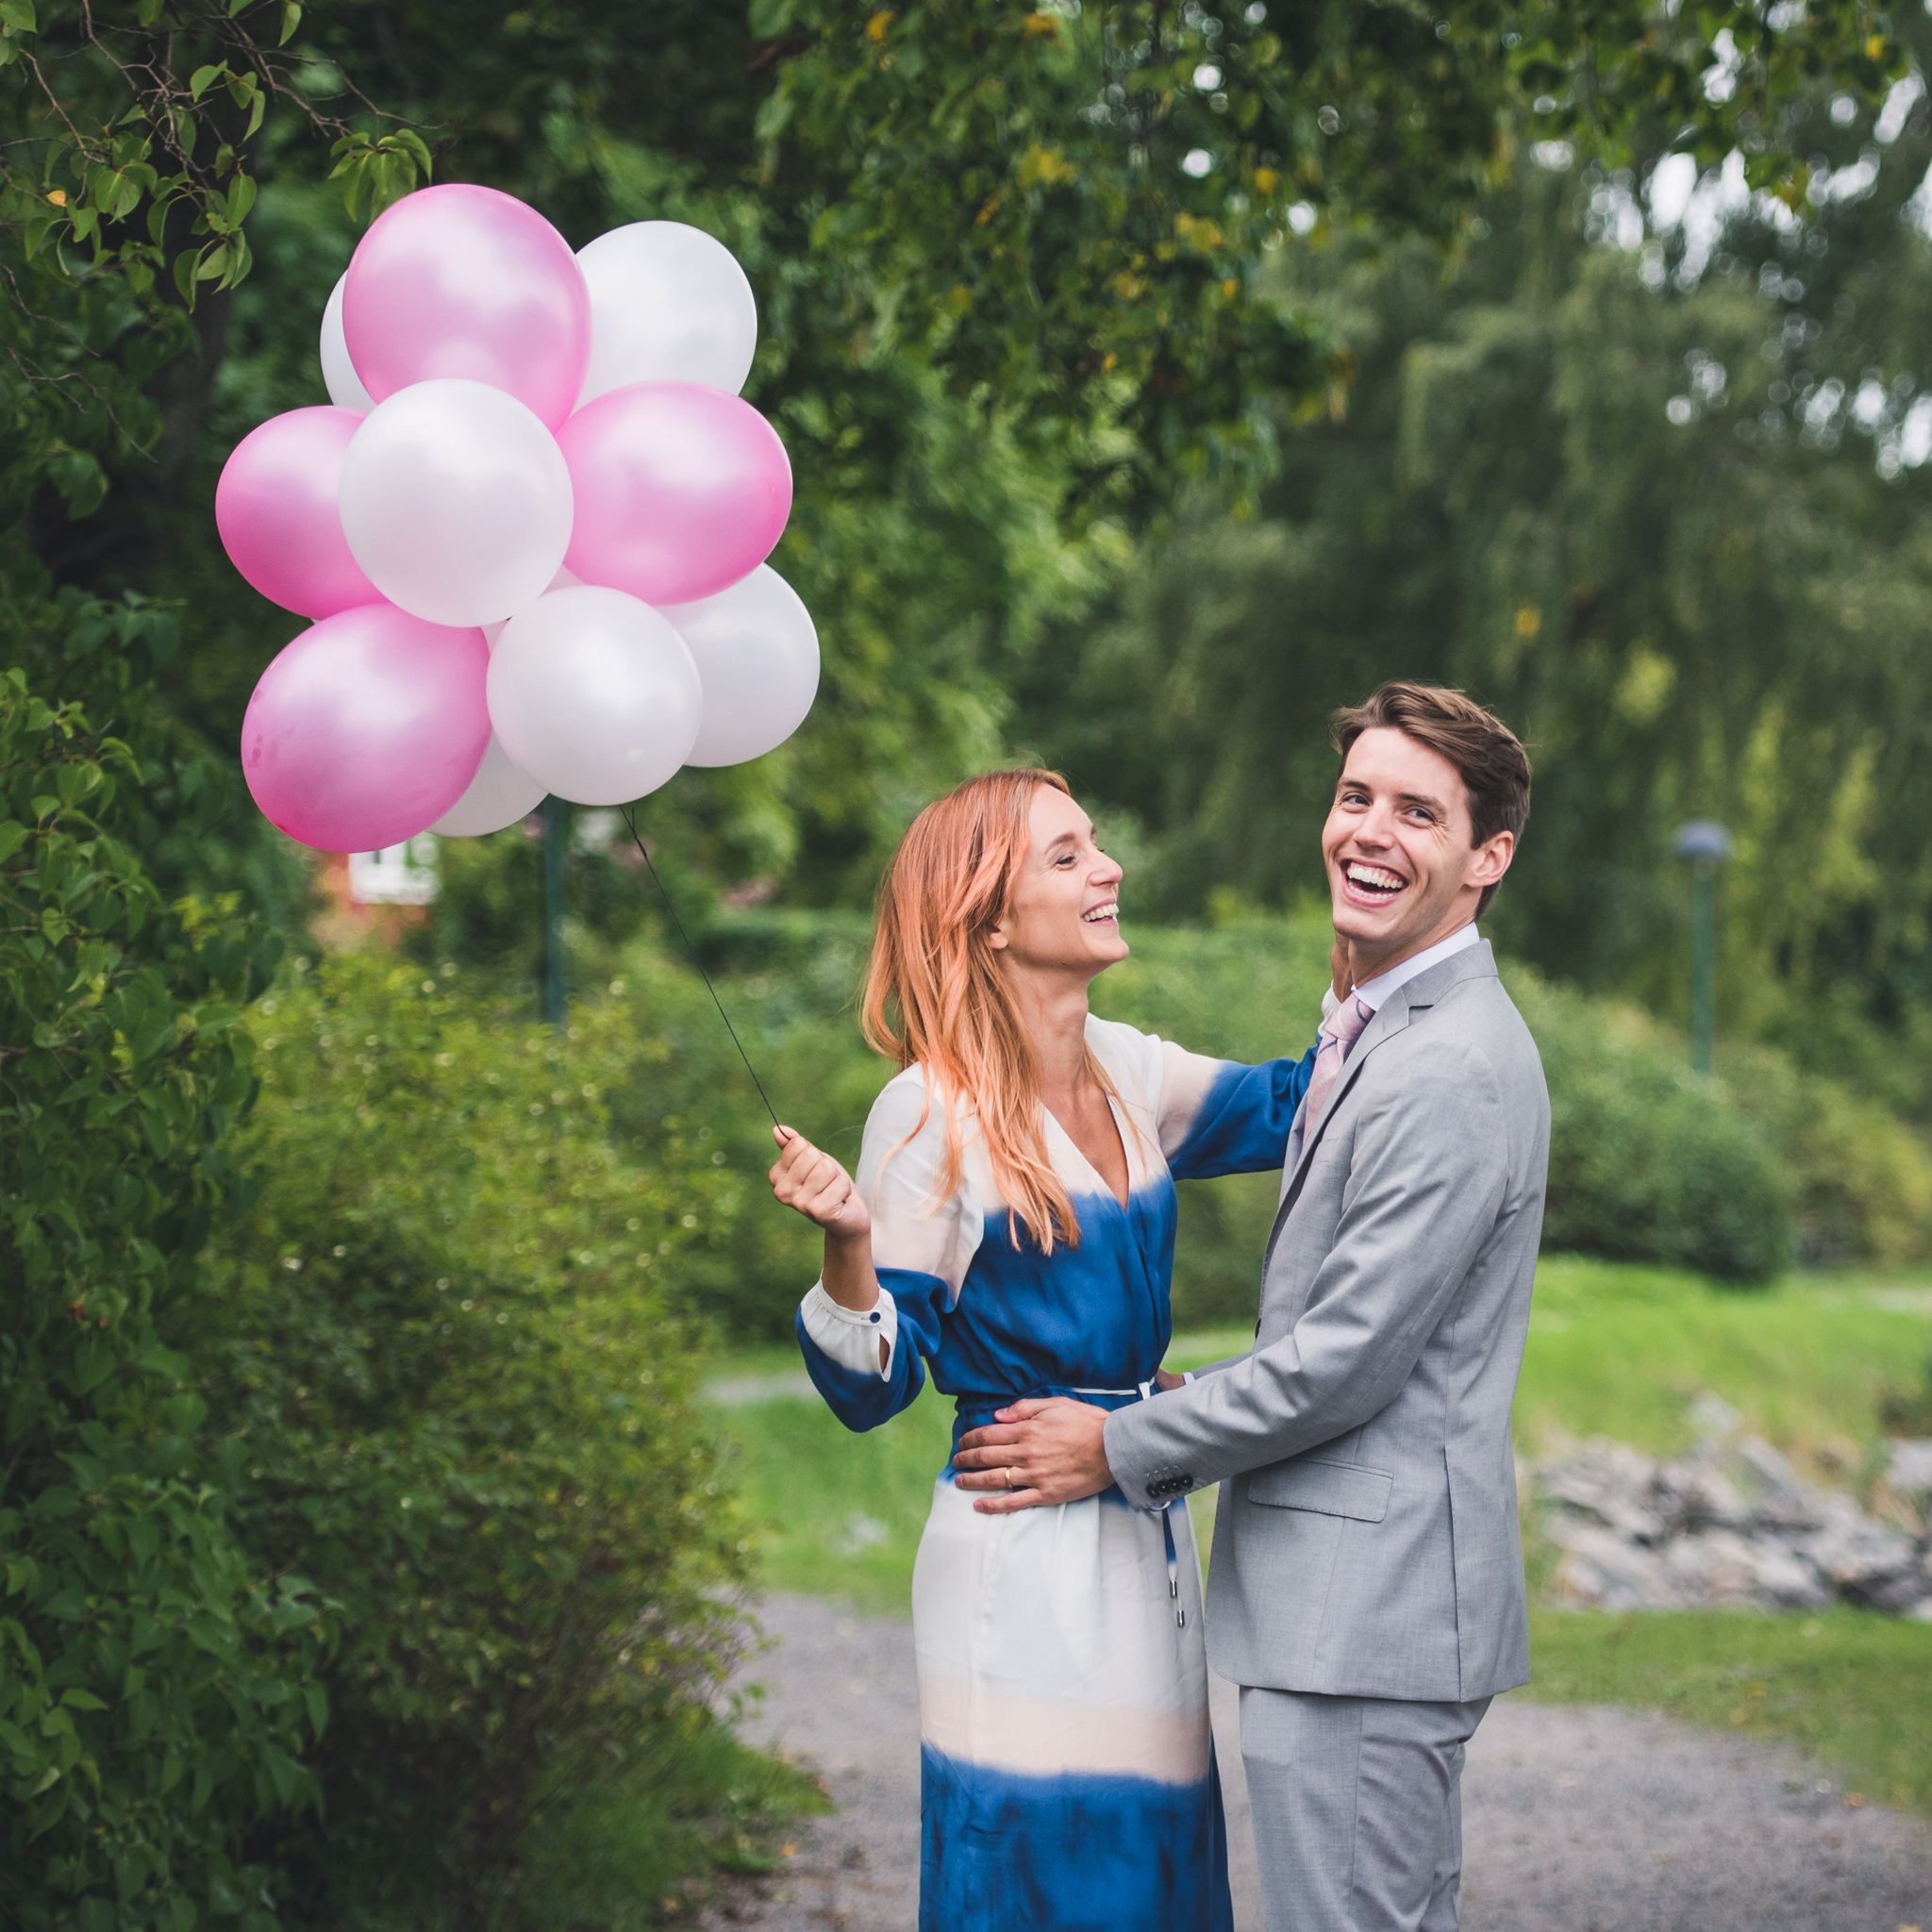 wedding balloons make everyone happy